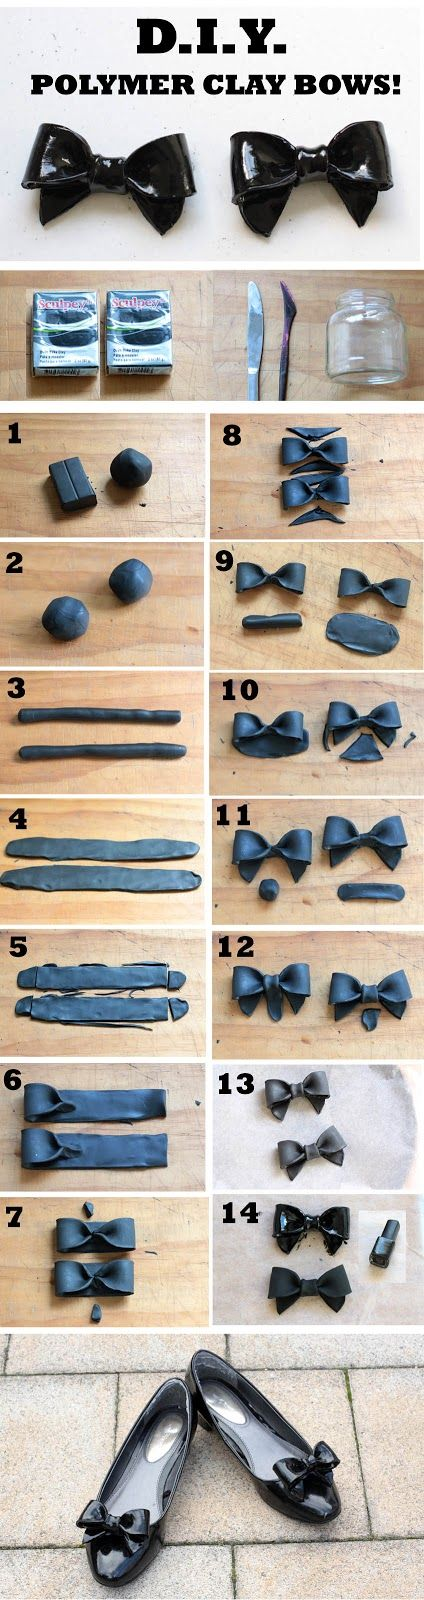 DIY Polymer Clay Bows Tutorial